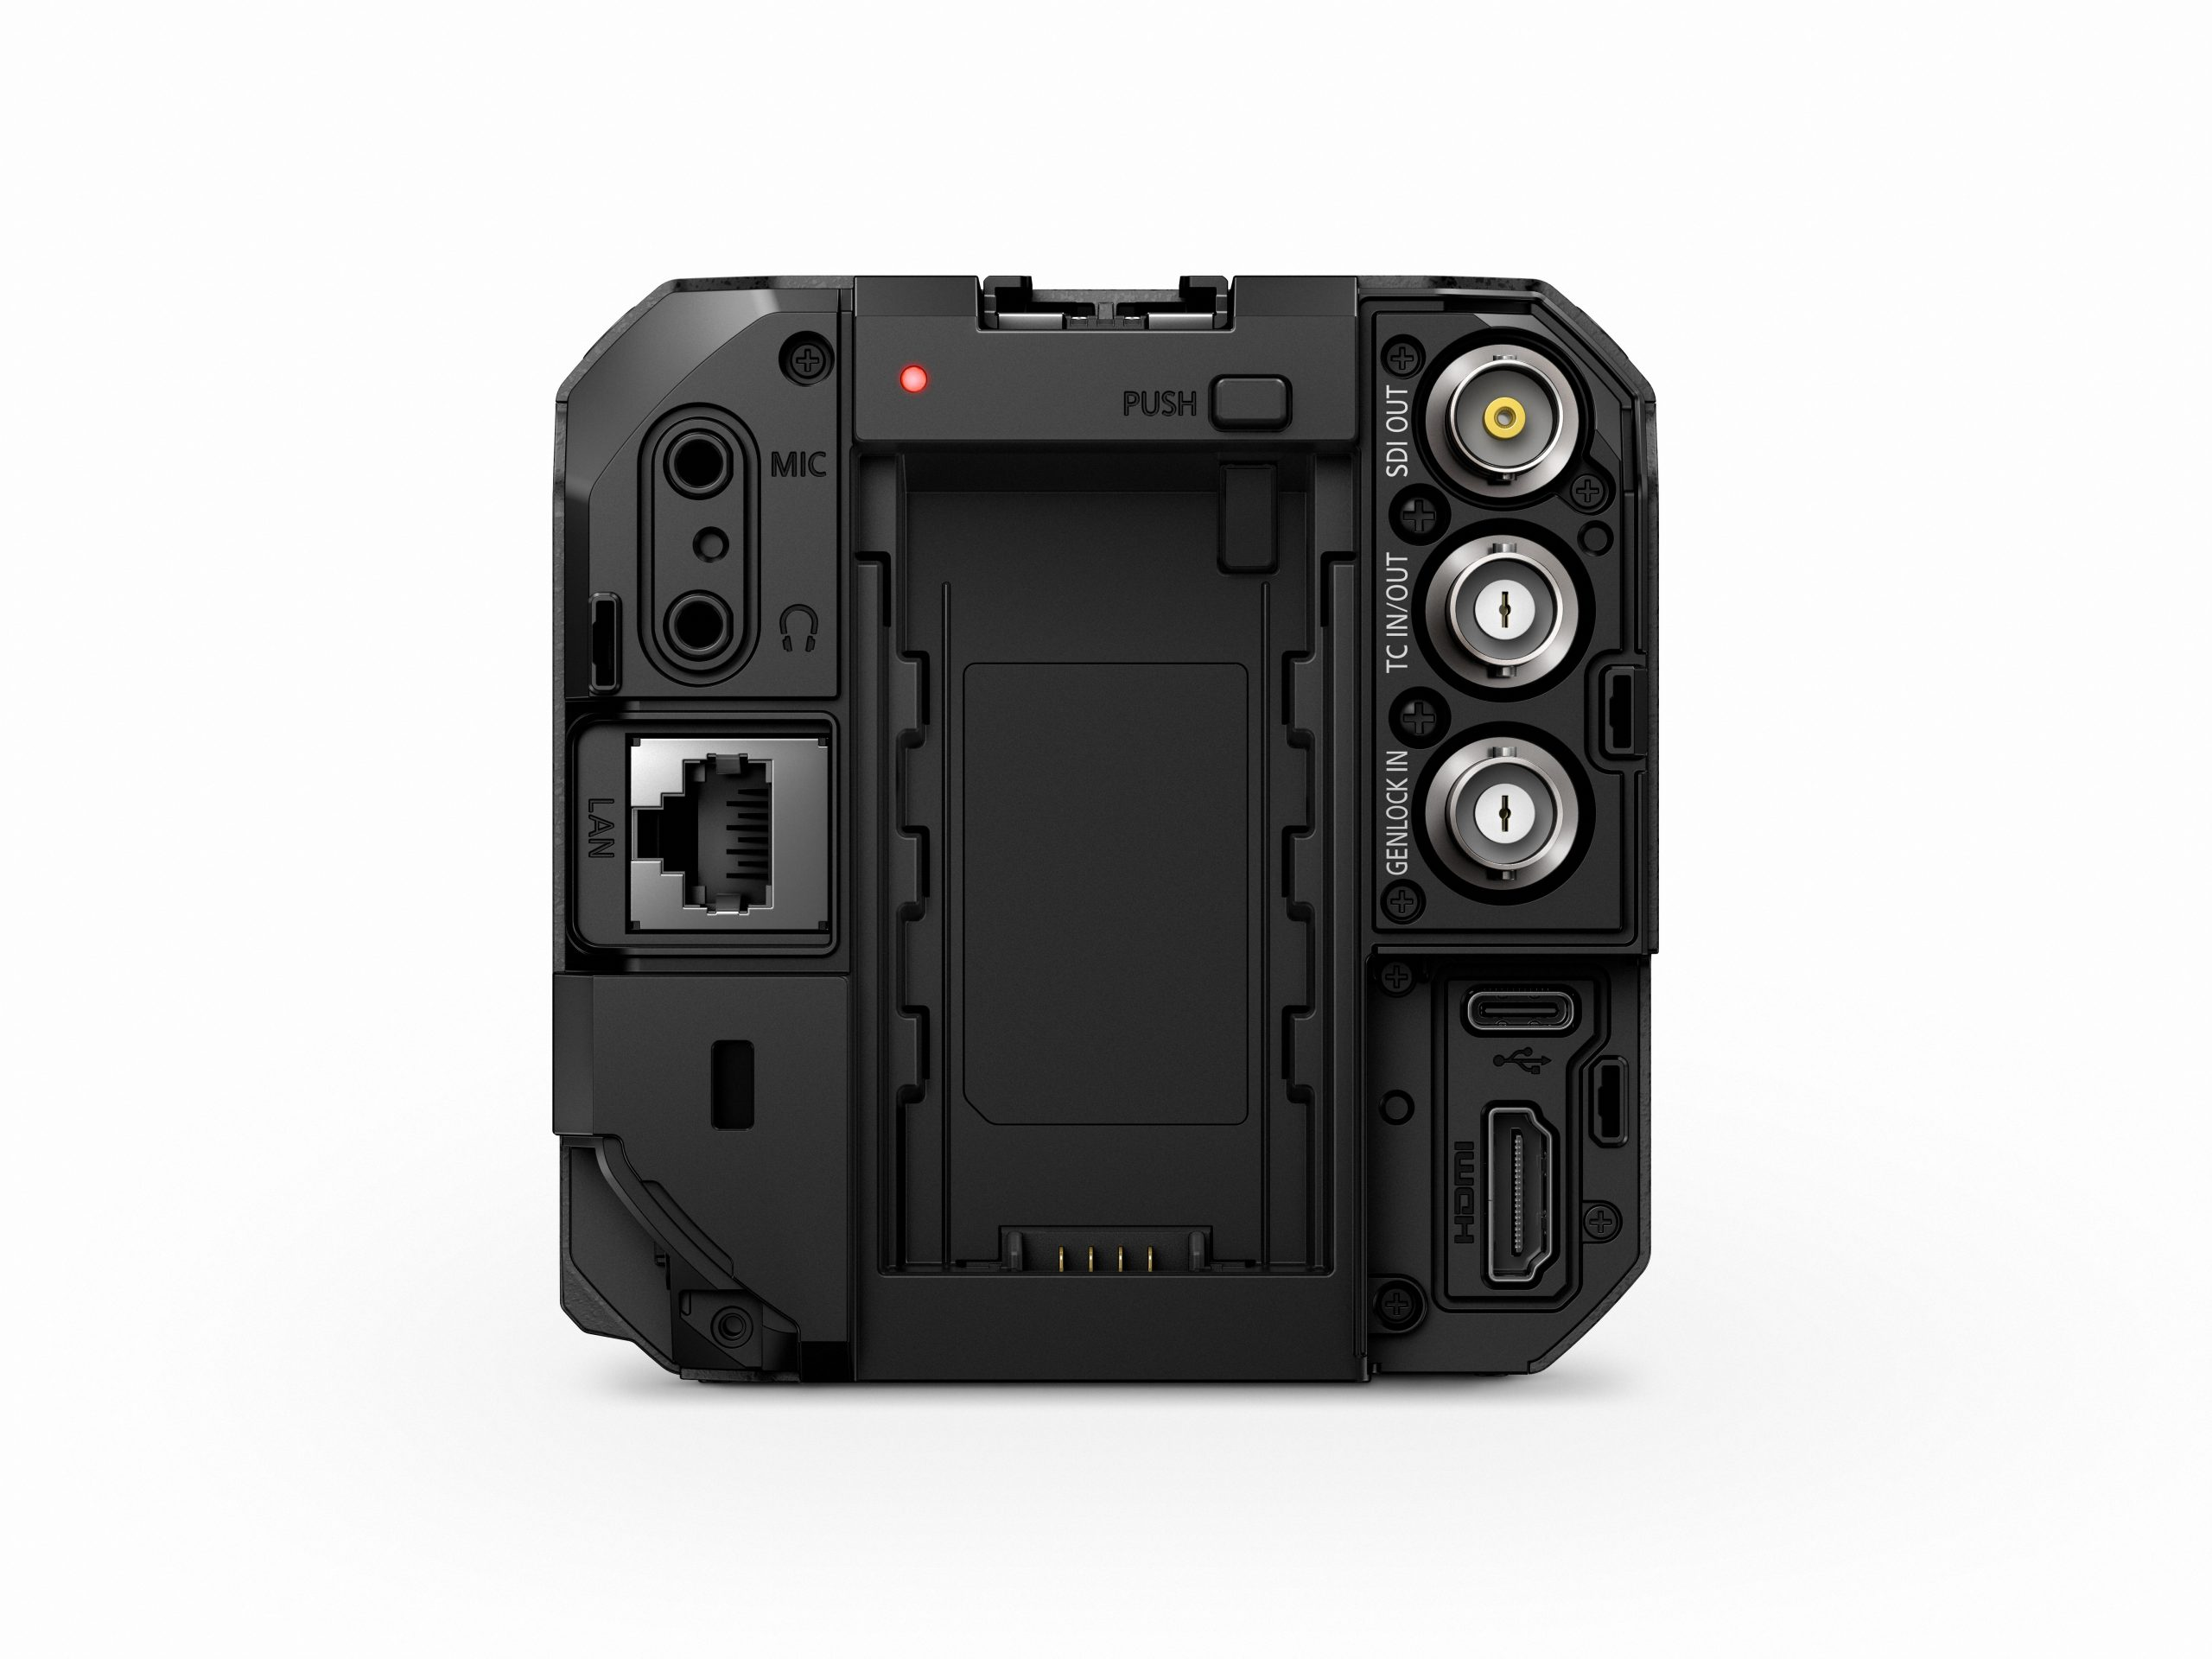 A backside view of the LUMIX BS1H camera